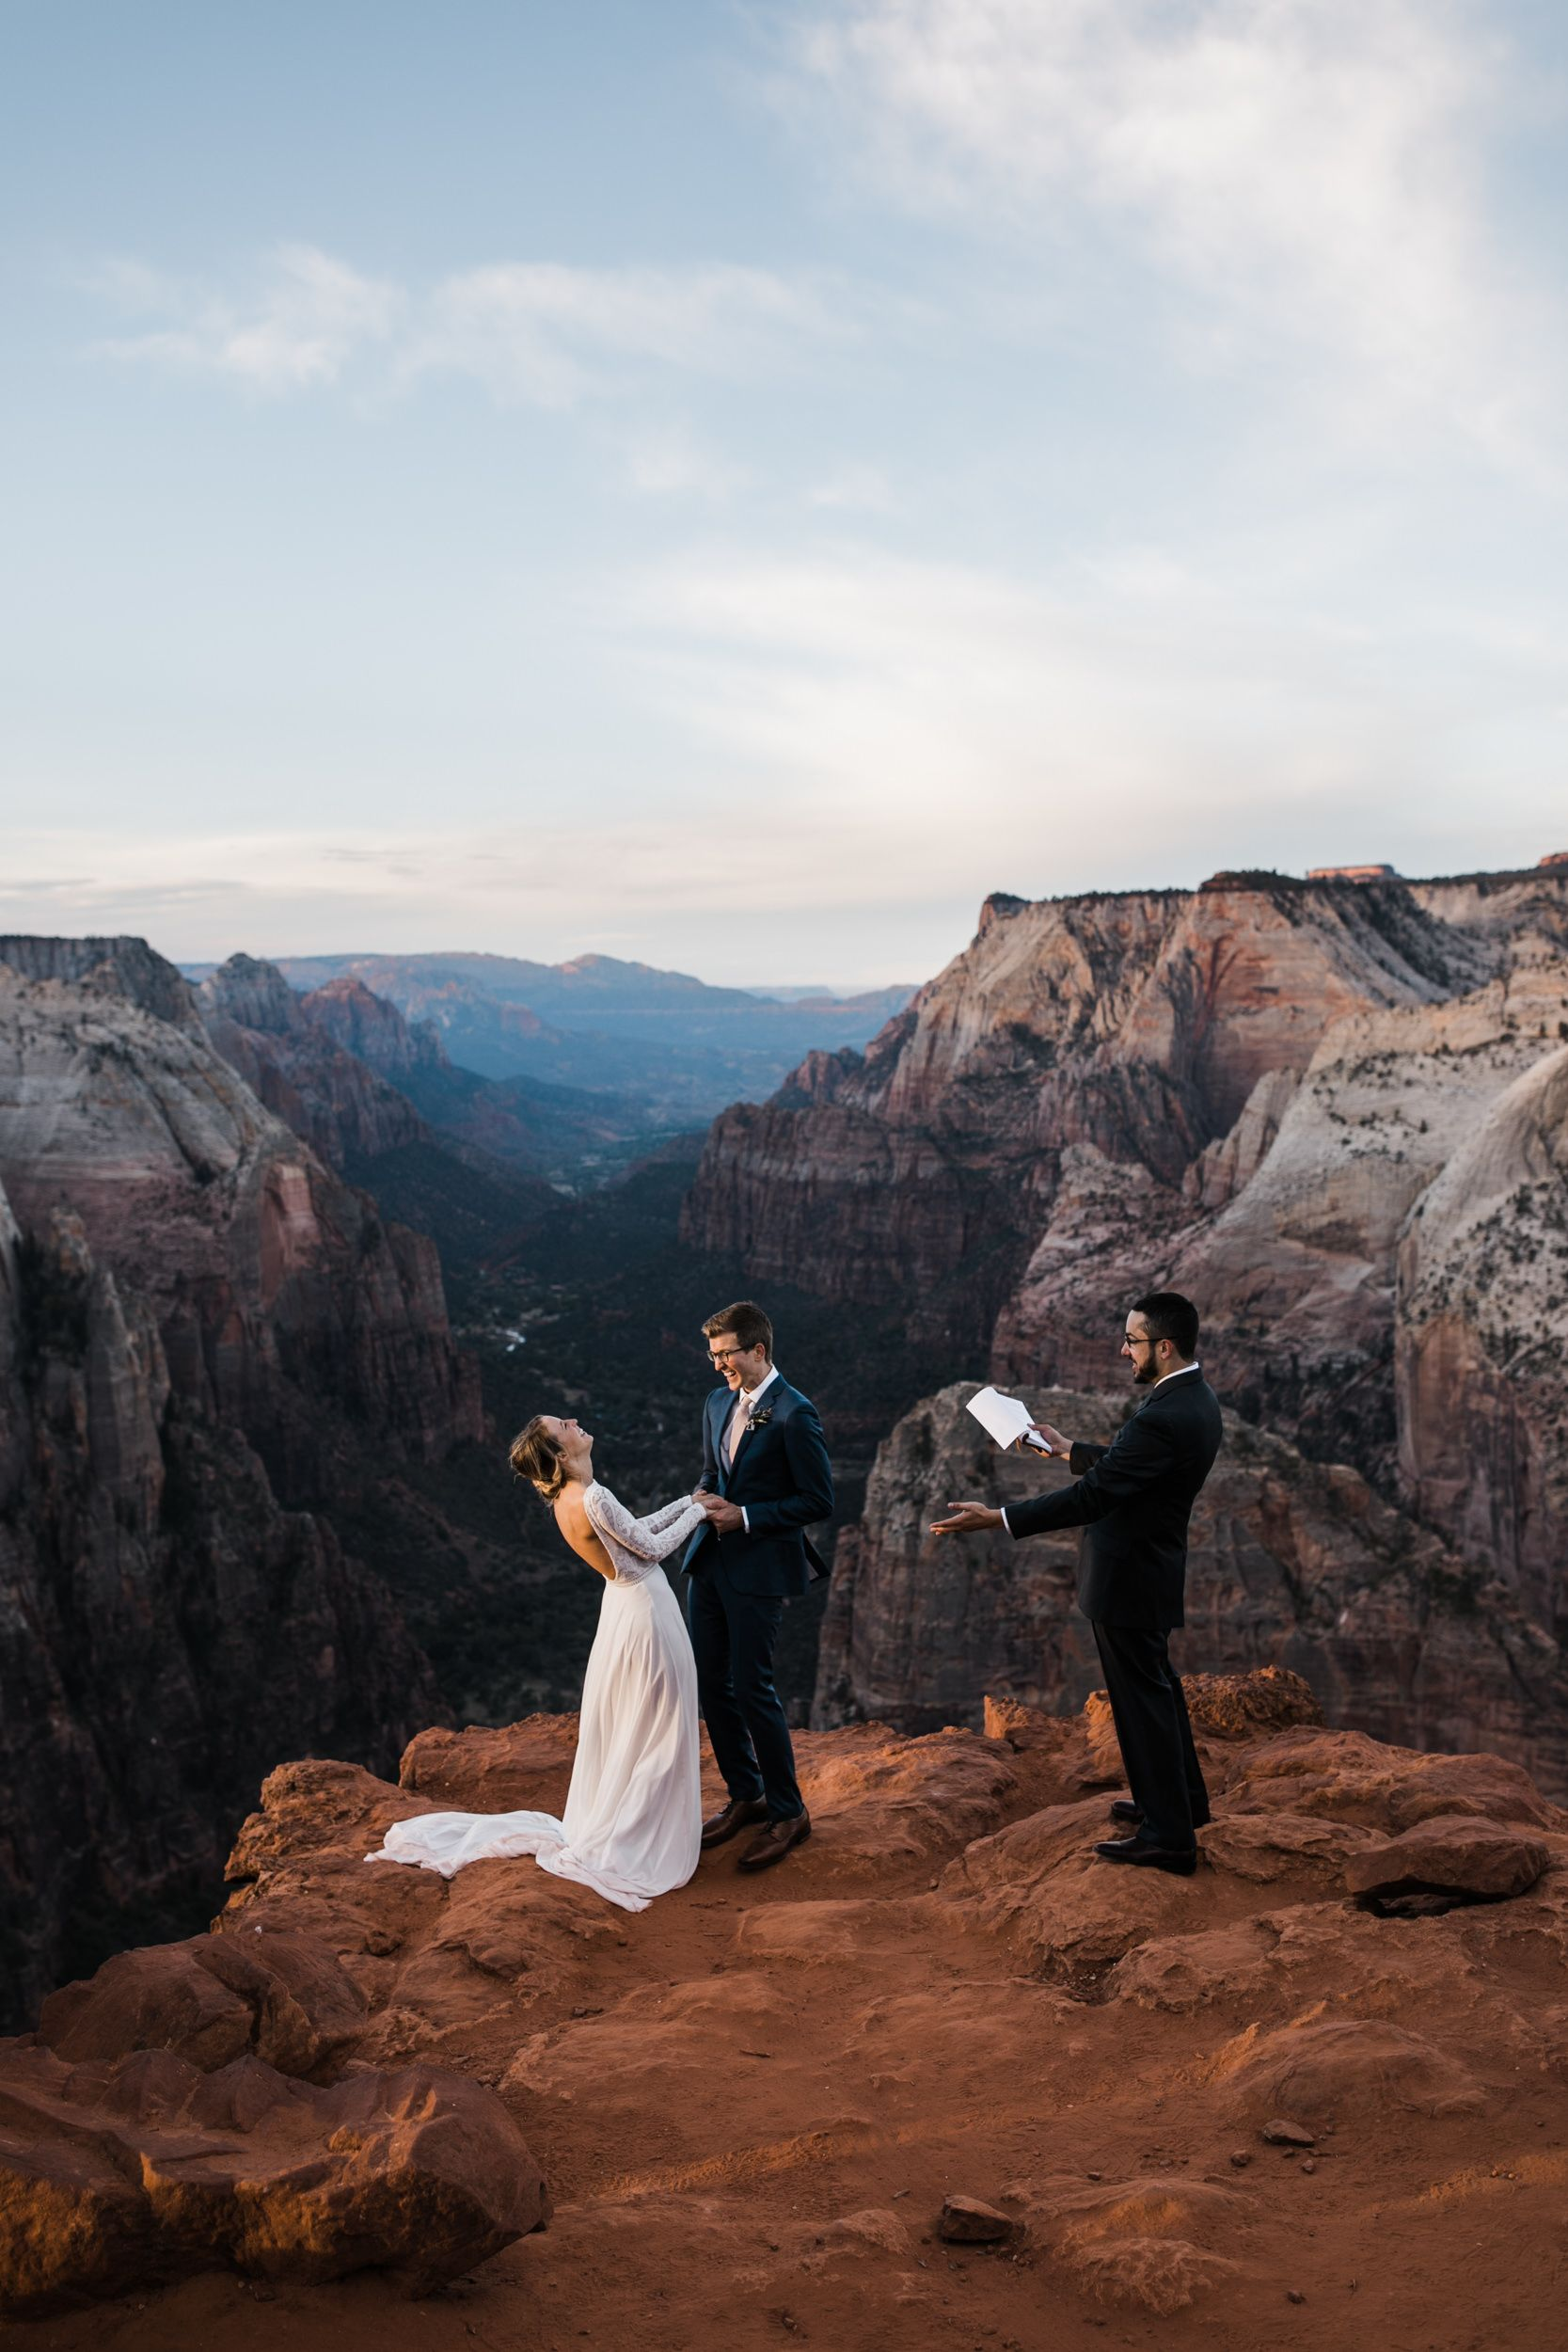 Zion National Park Hiking Elopement Utah Adventure Wedding Photographer Adventure Wedding Elopement Photographers In Moab Yosemite And Beyond The Hear Elope Wedding Adventure Wedding Photographer Adventure Wedding